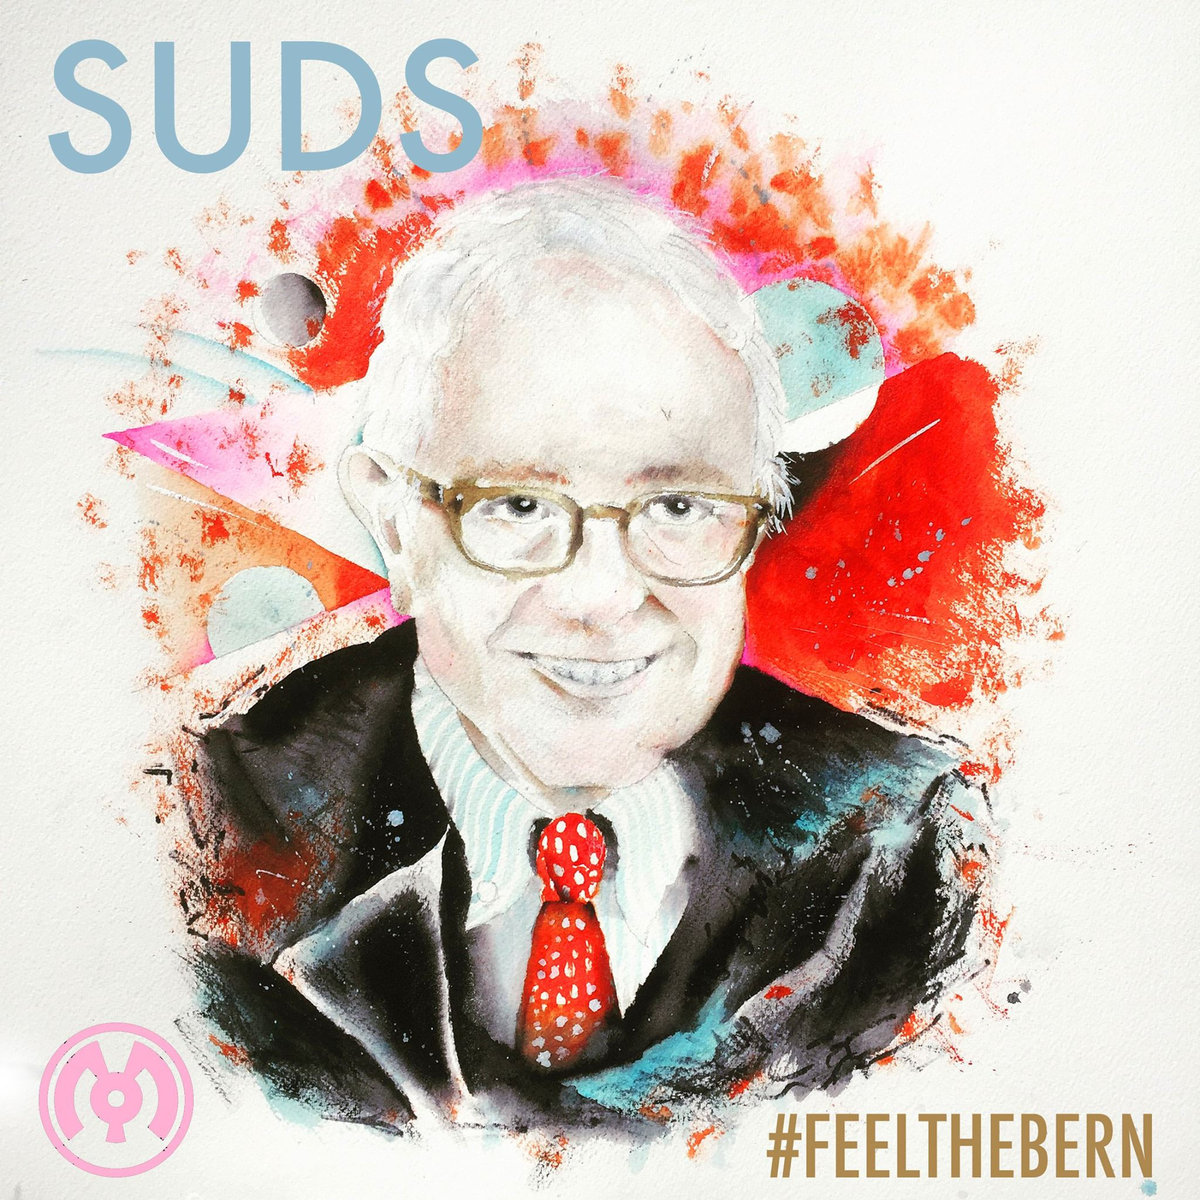 SuDs - Feel the Bern @ 'Feel the Bern' album (electronic, dubstep)